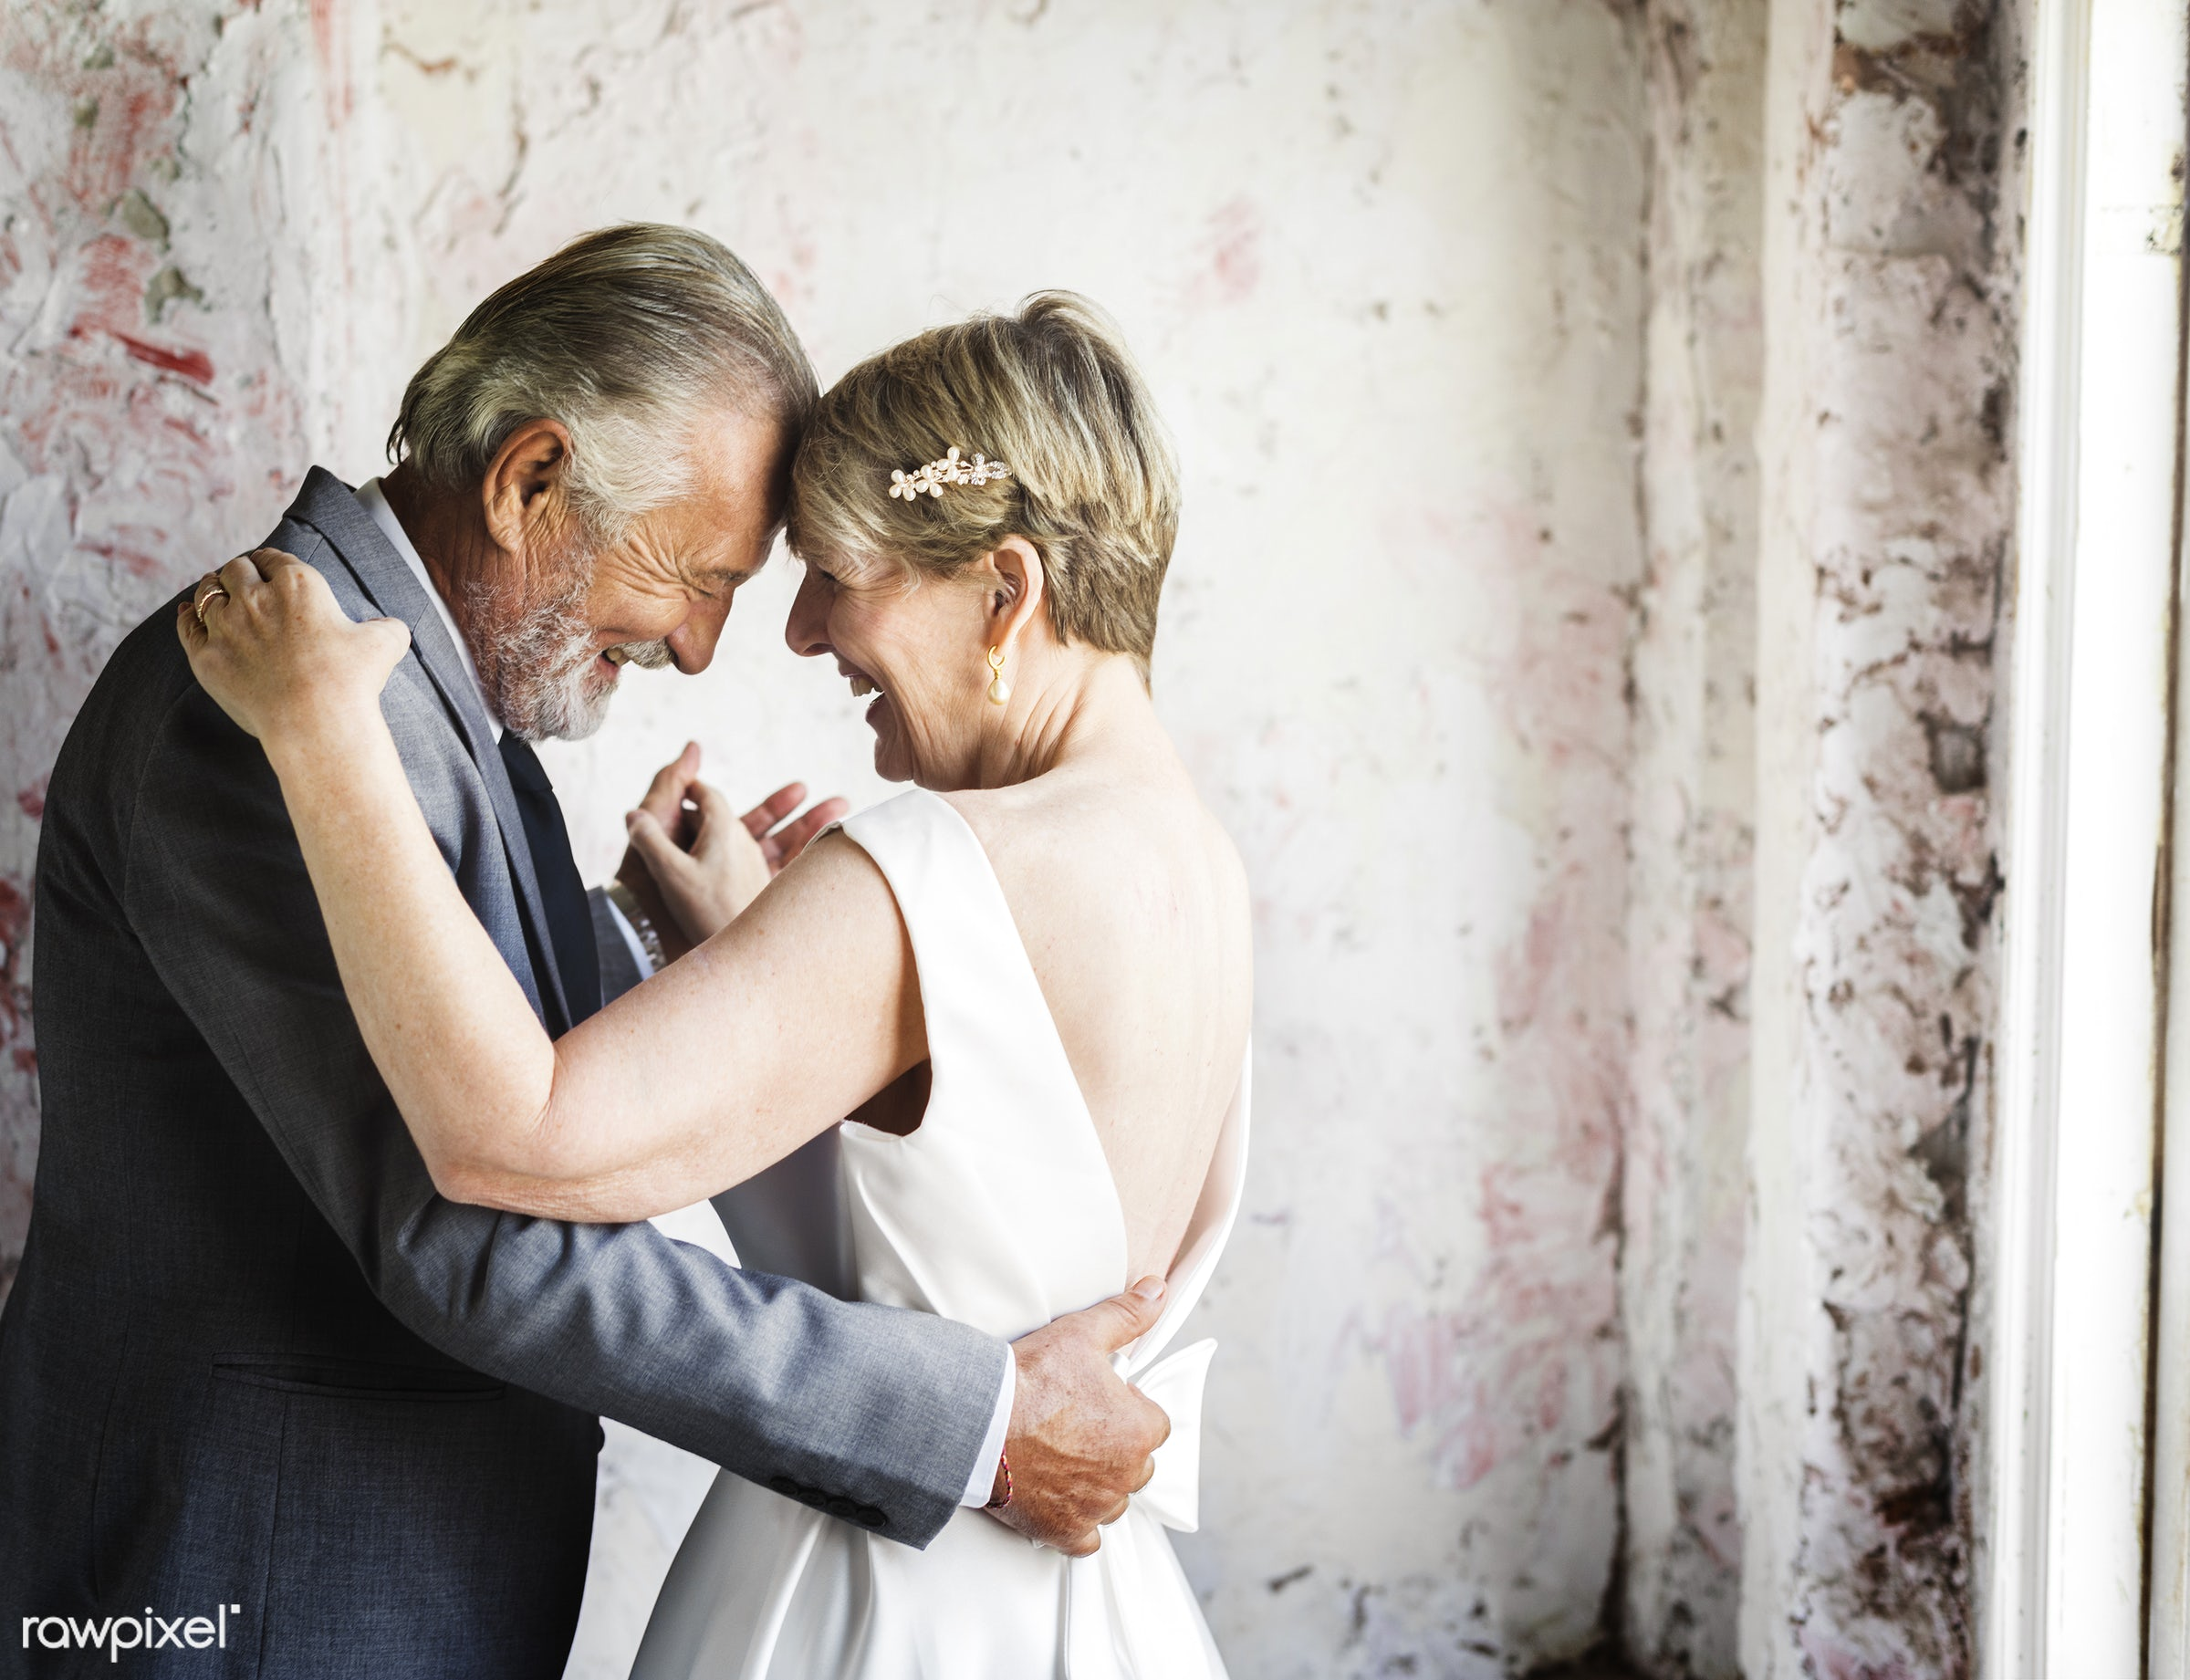 holding, occasion, husband, people, together, caucasian, love, married, hands, spouse, banquet, cheerful, senior couple,...